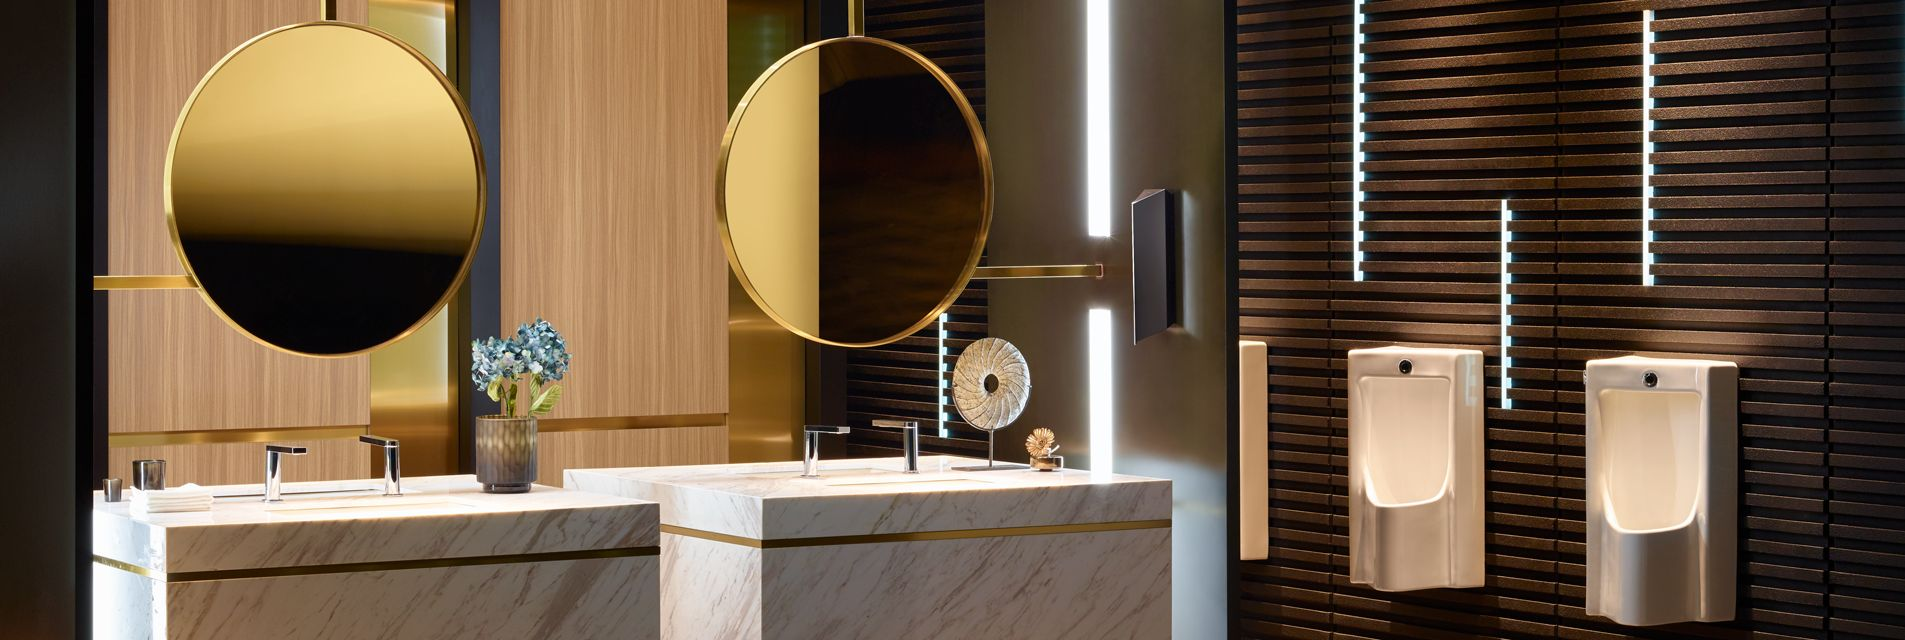 Commercial Bathroom Products Buying Guide